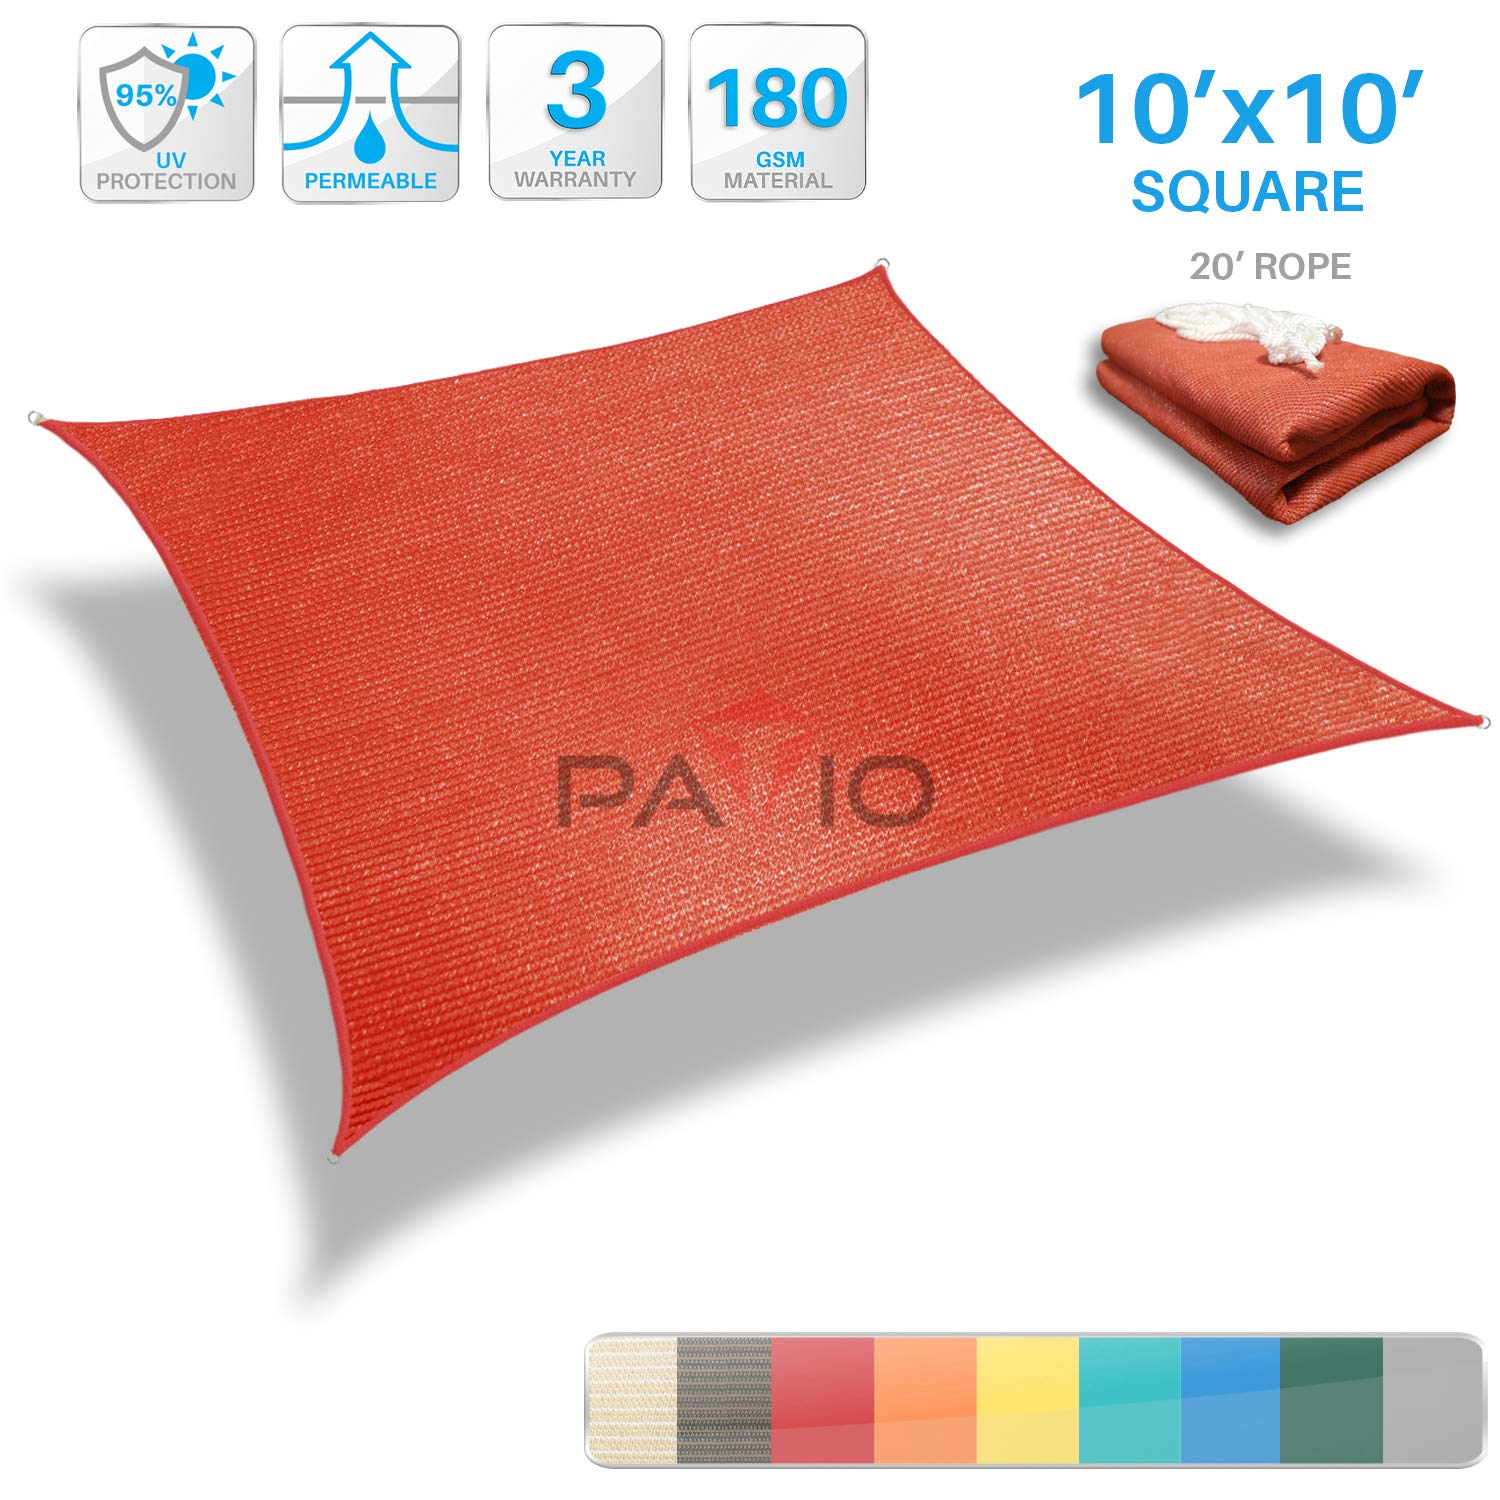 Patio Paradise 10' x 10' Red Sun Shade Sail Square Canopy - Permeable UV Block Fabric Durable Outdoor - Customized Available